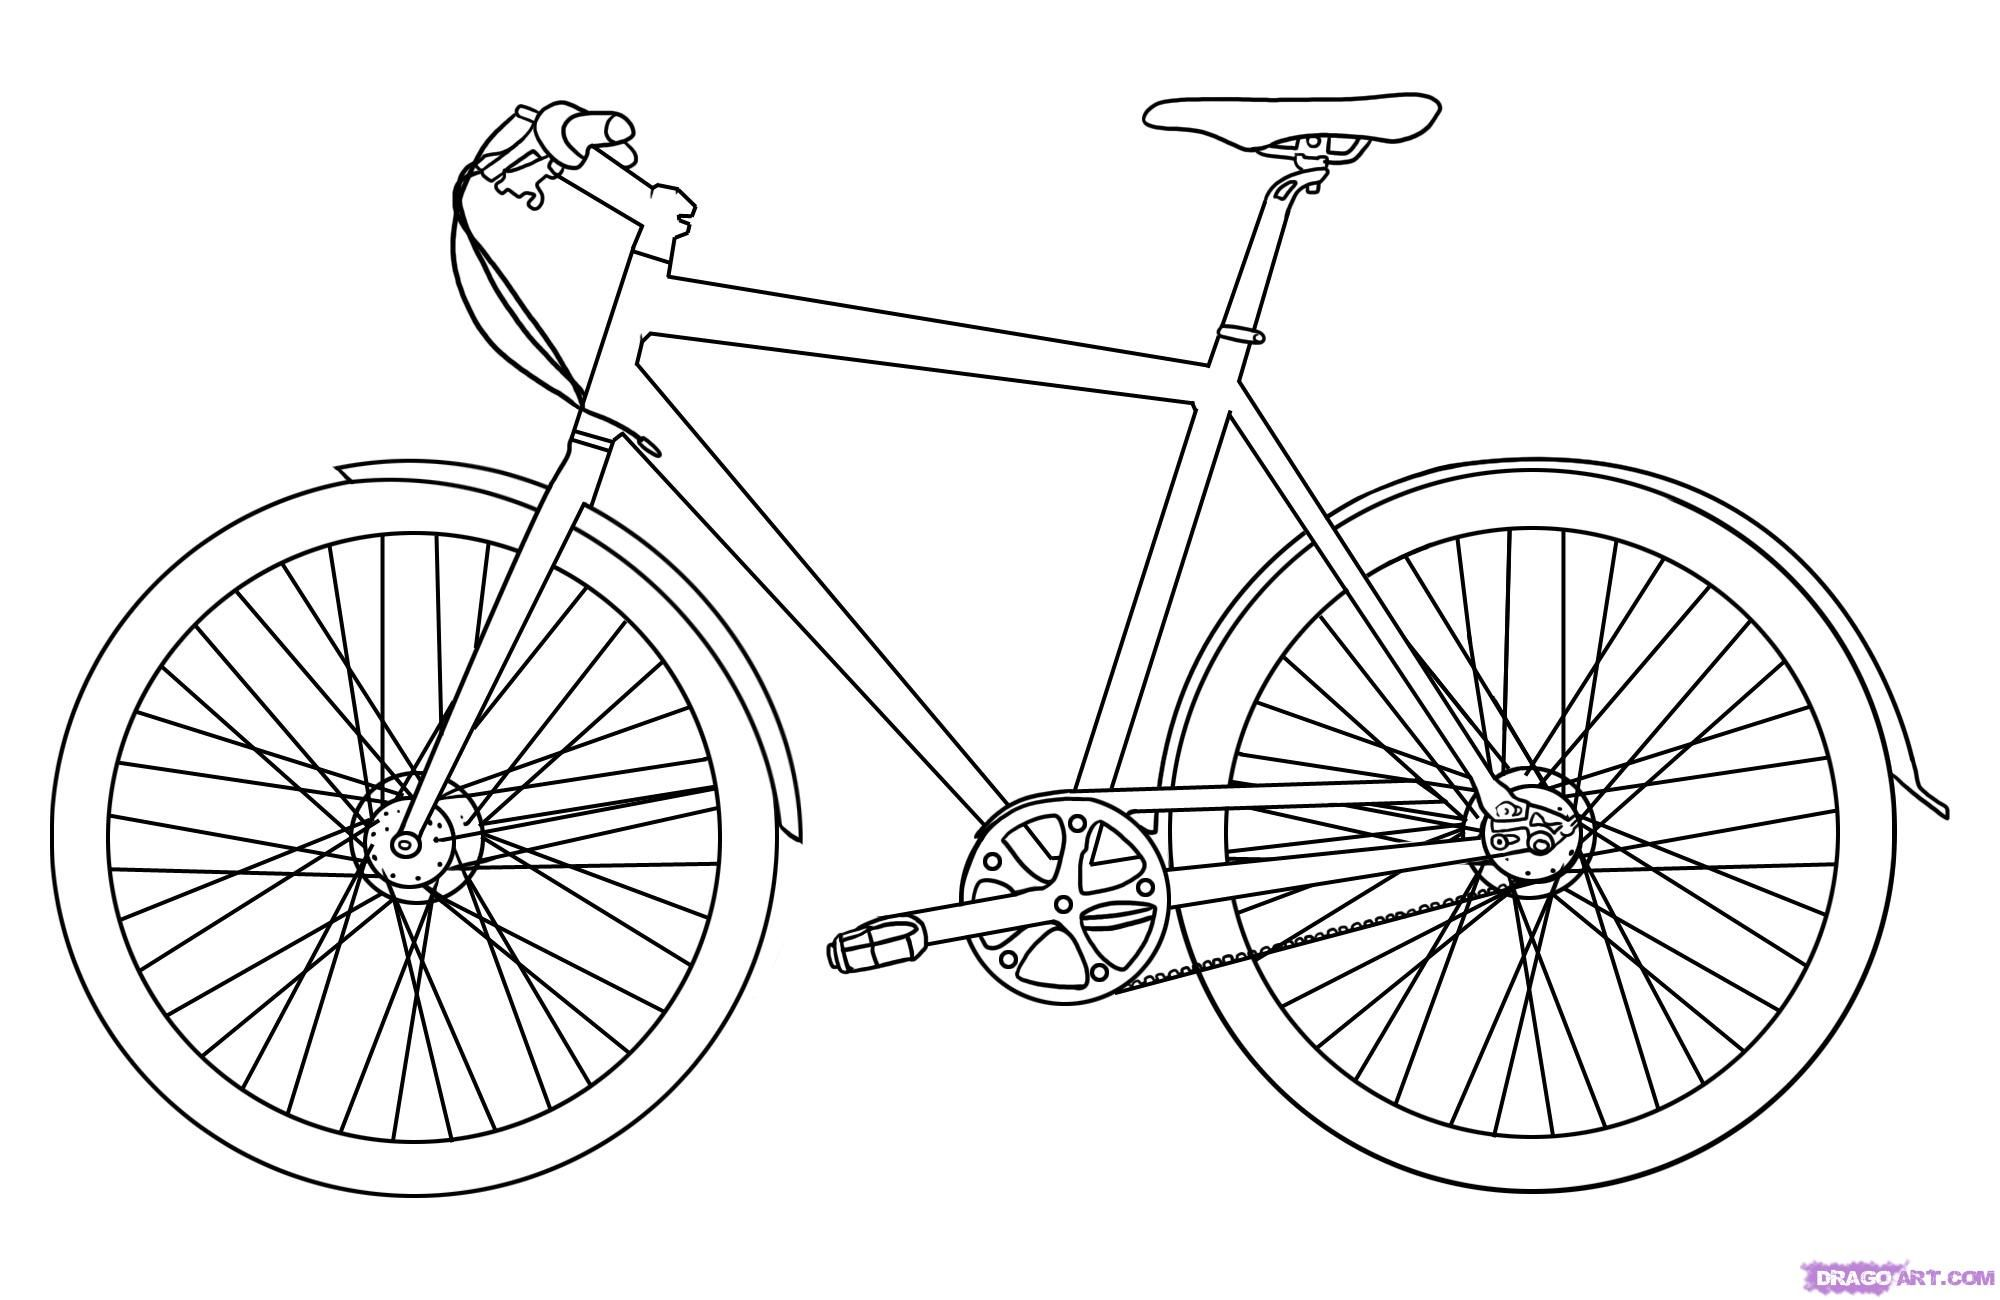 how to sketch a bike how to draw a bicycle step by step drawing tutorials for sketch a bike how to